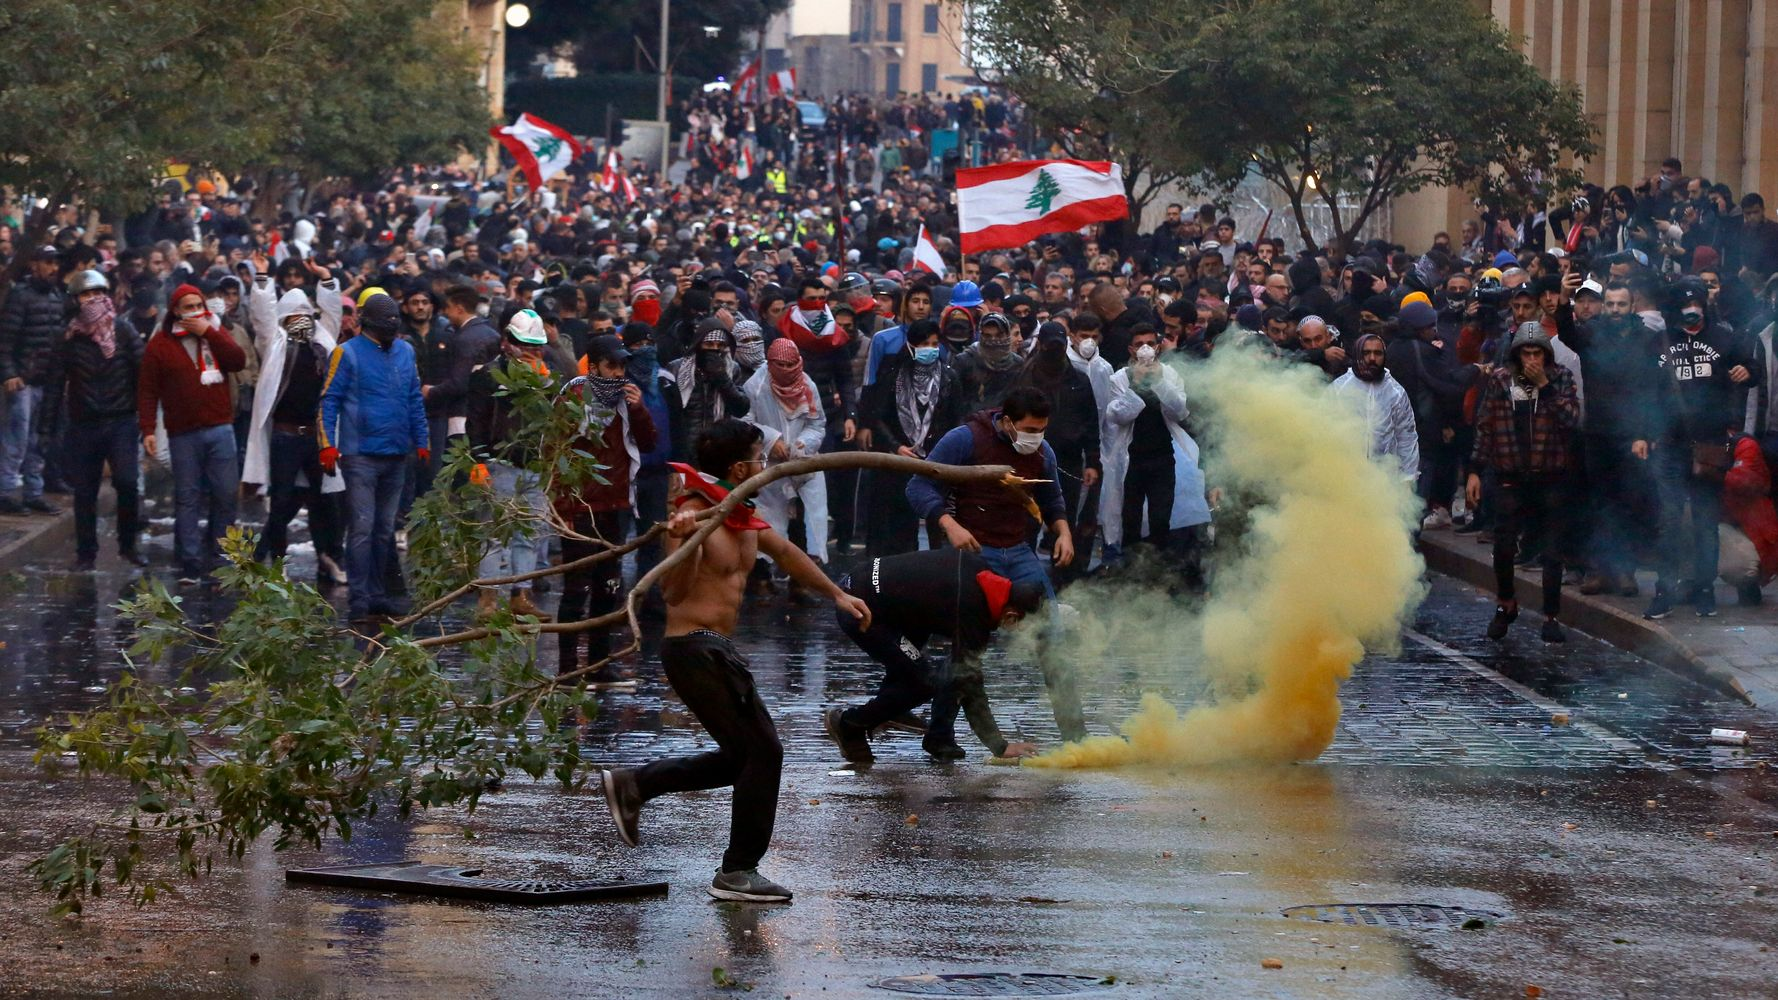 Westlake Legal Group 5e235a7d24000052006c4500 Lebanon Police Fire Tear Gas, Water Cannons At Protesters Amid Riot